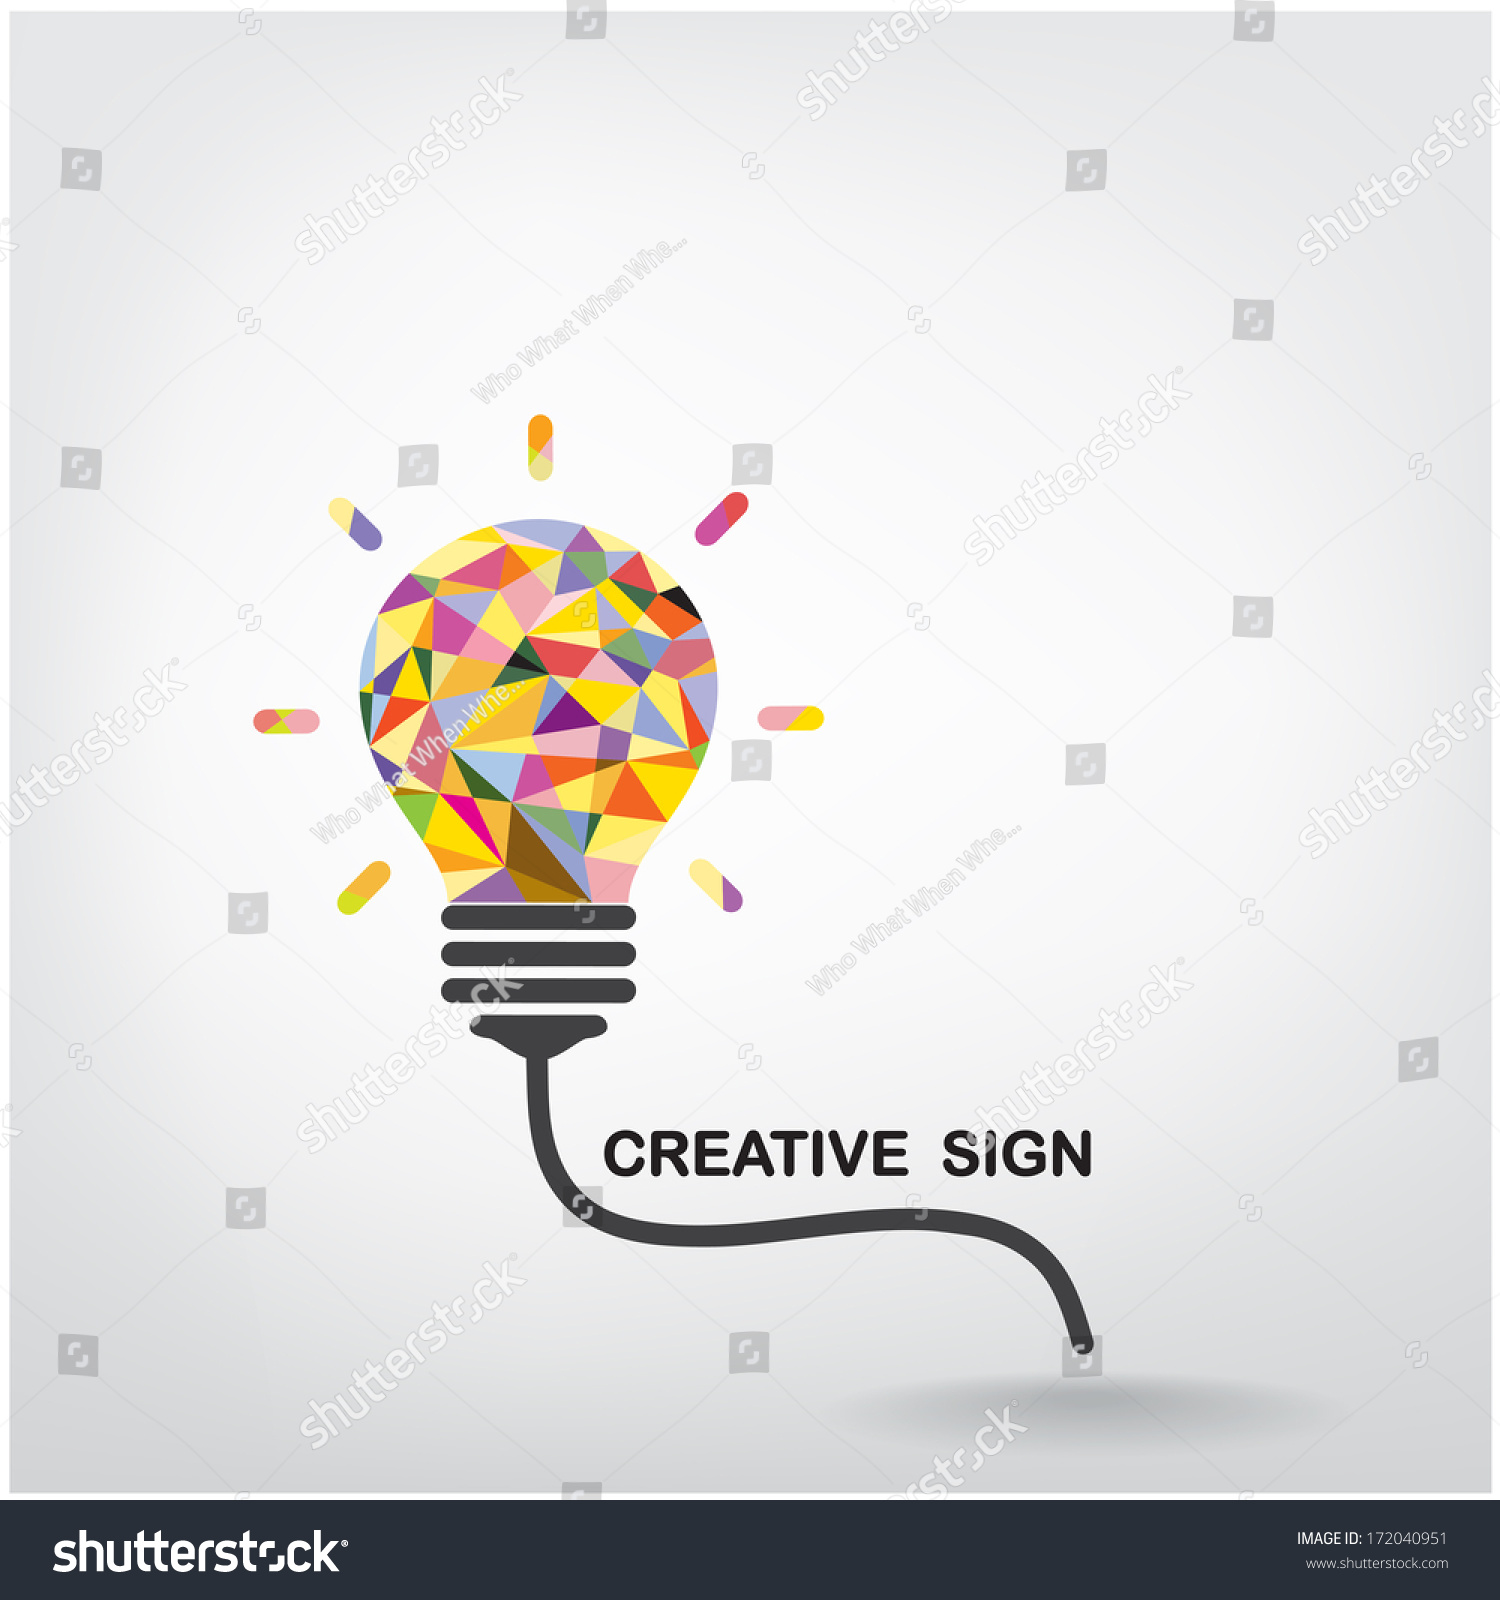 creative light bulb idea concept background design for poster flyer